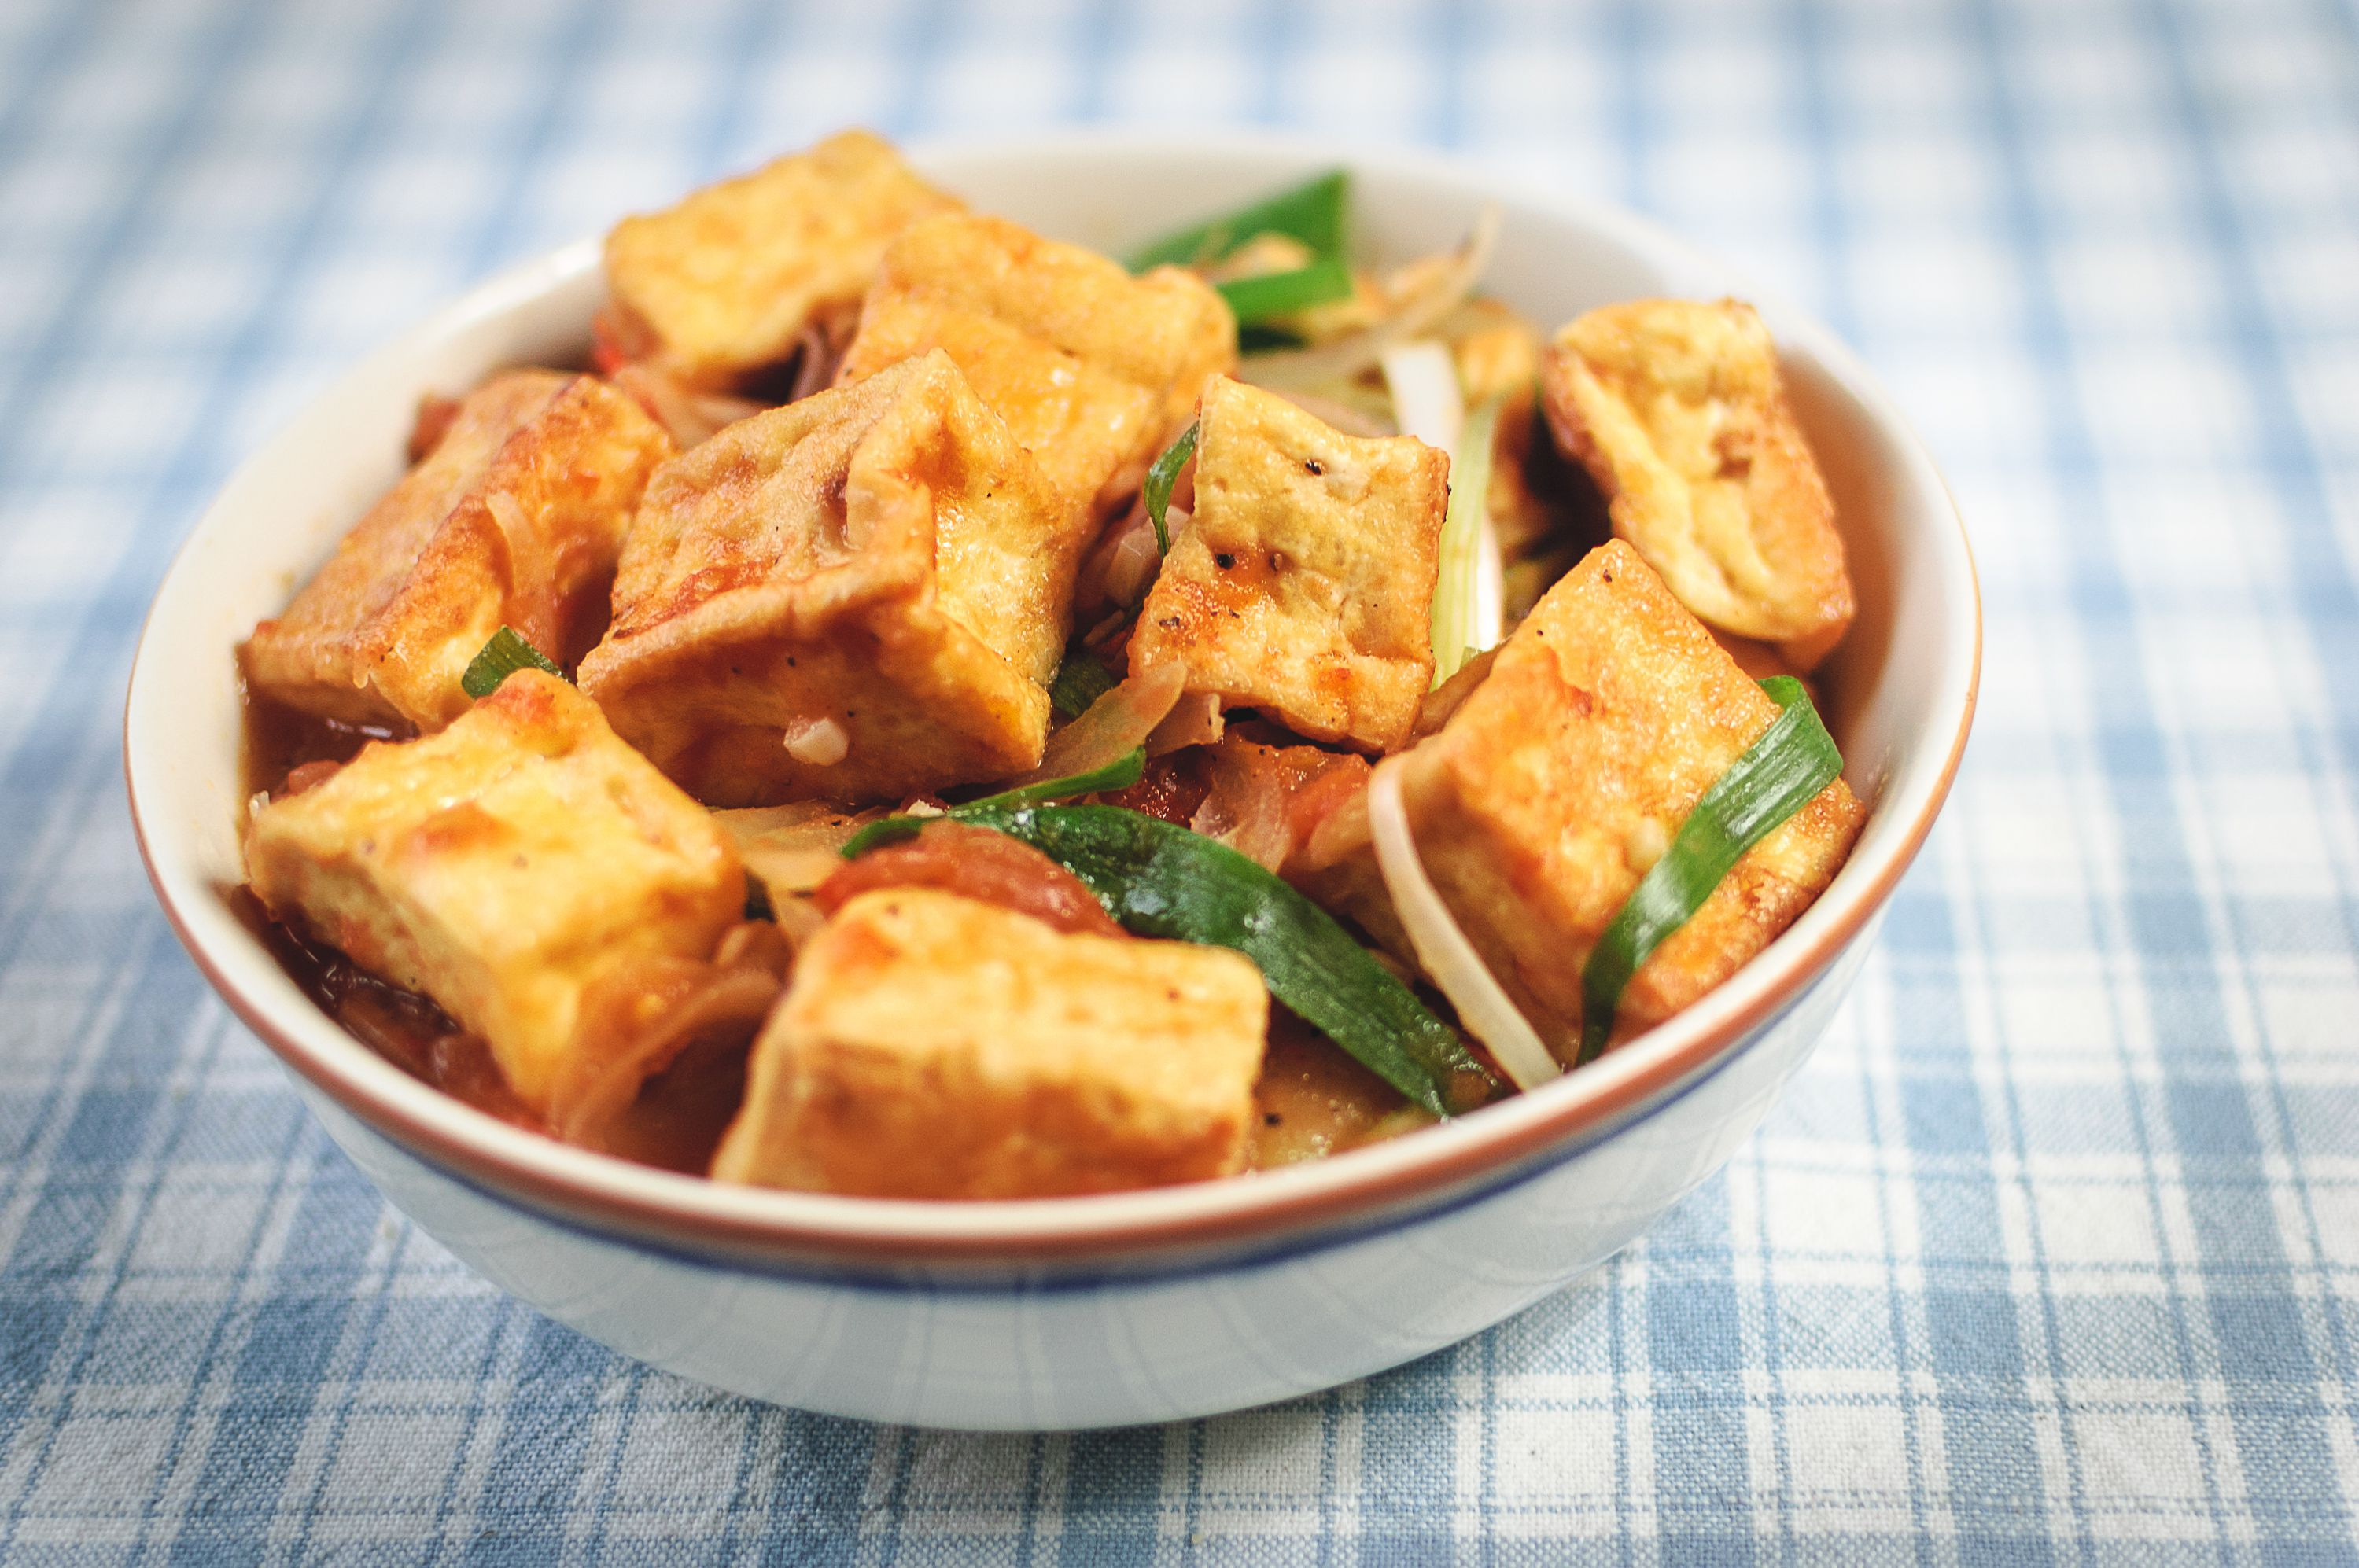 Vegetarian And Vegan Tofu Recipes For Breakfast, Lunch And